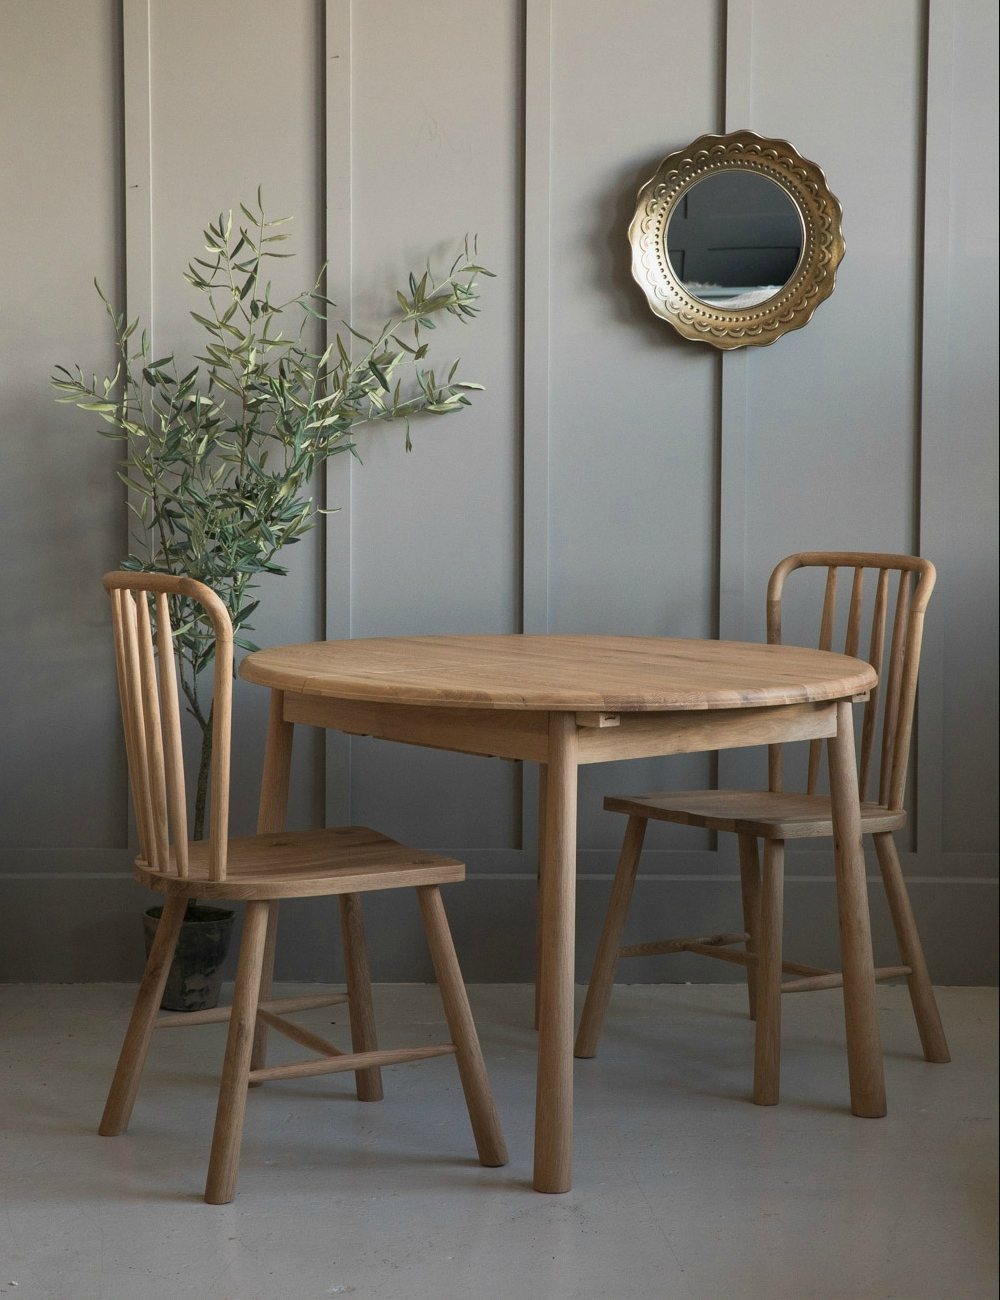 Extendable Round Dining Tables Intended For Preferred Nordic Round Extending Dining Table At Rose & Grey (View 9 of 25)